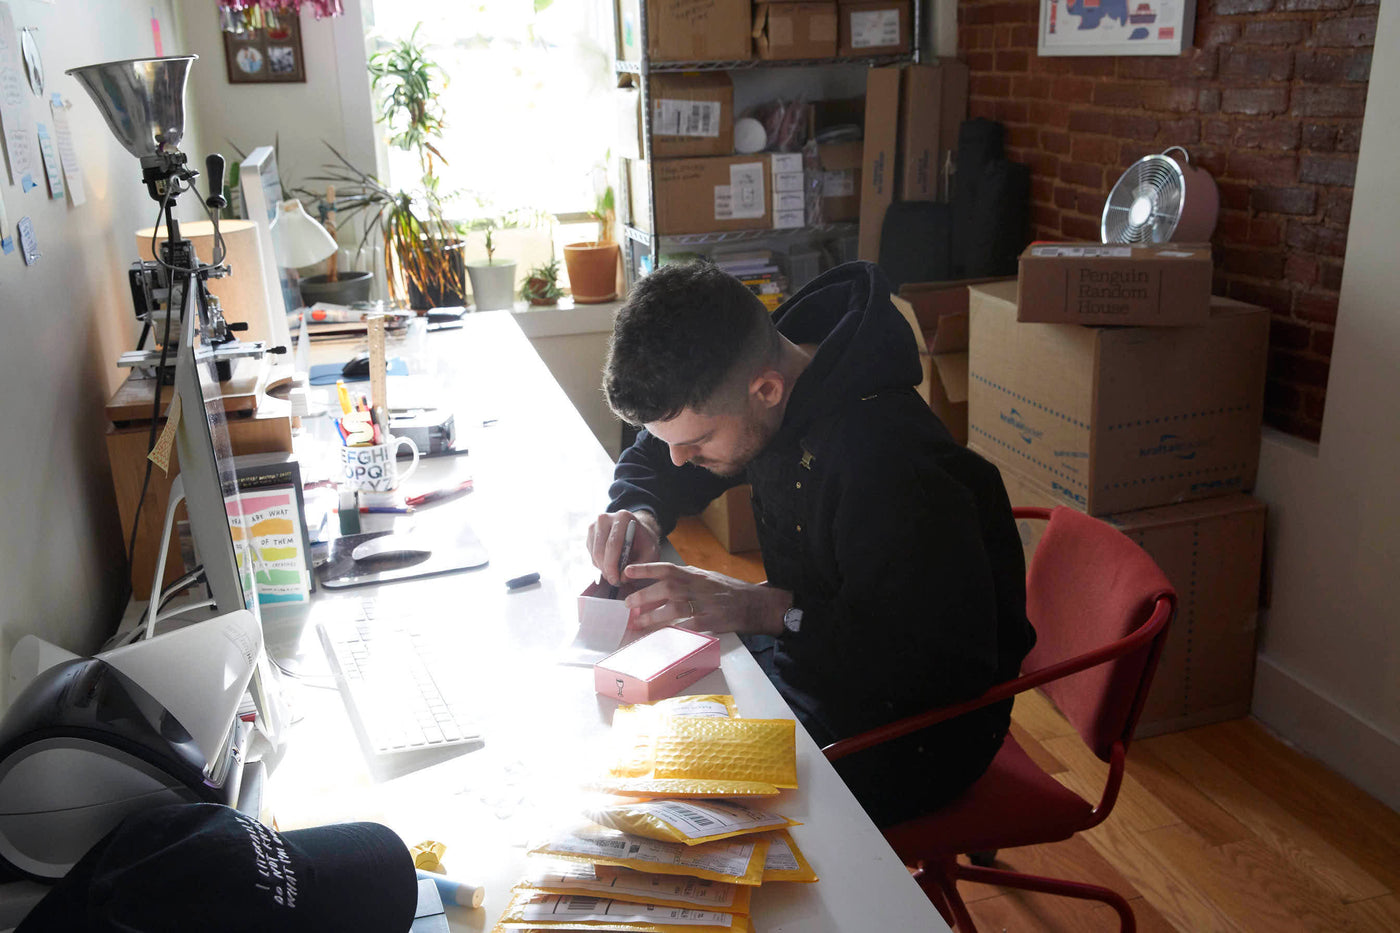 Photo of Adam hunched over work at a cluttered desk in his studio. Packages of merchandise sit nearby.